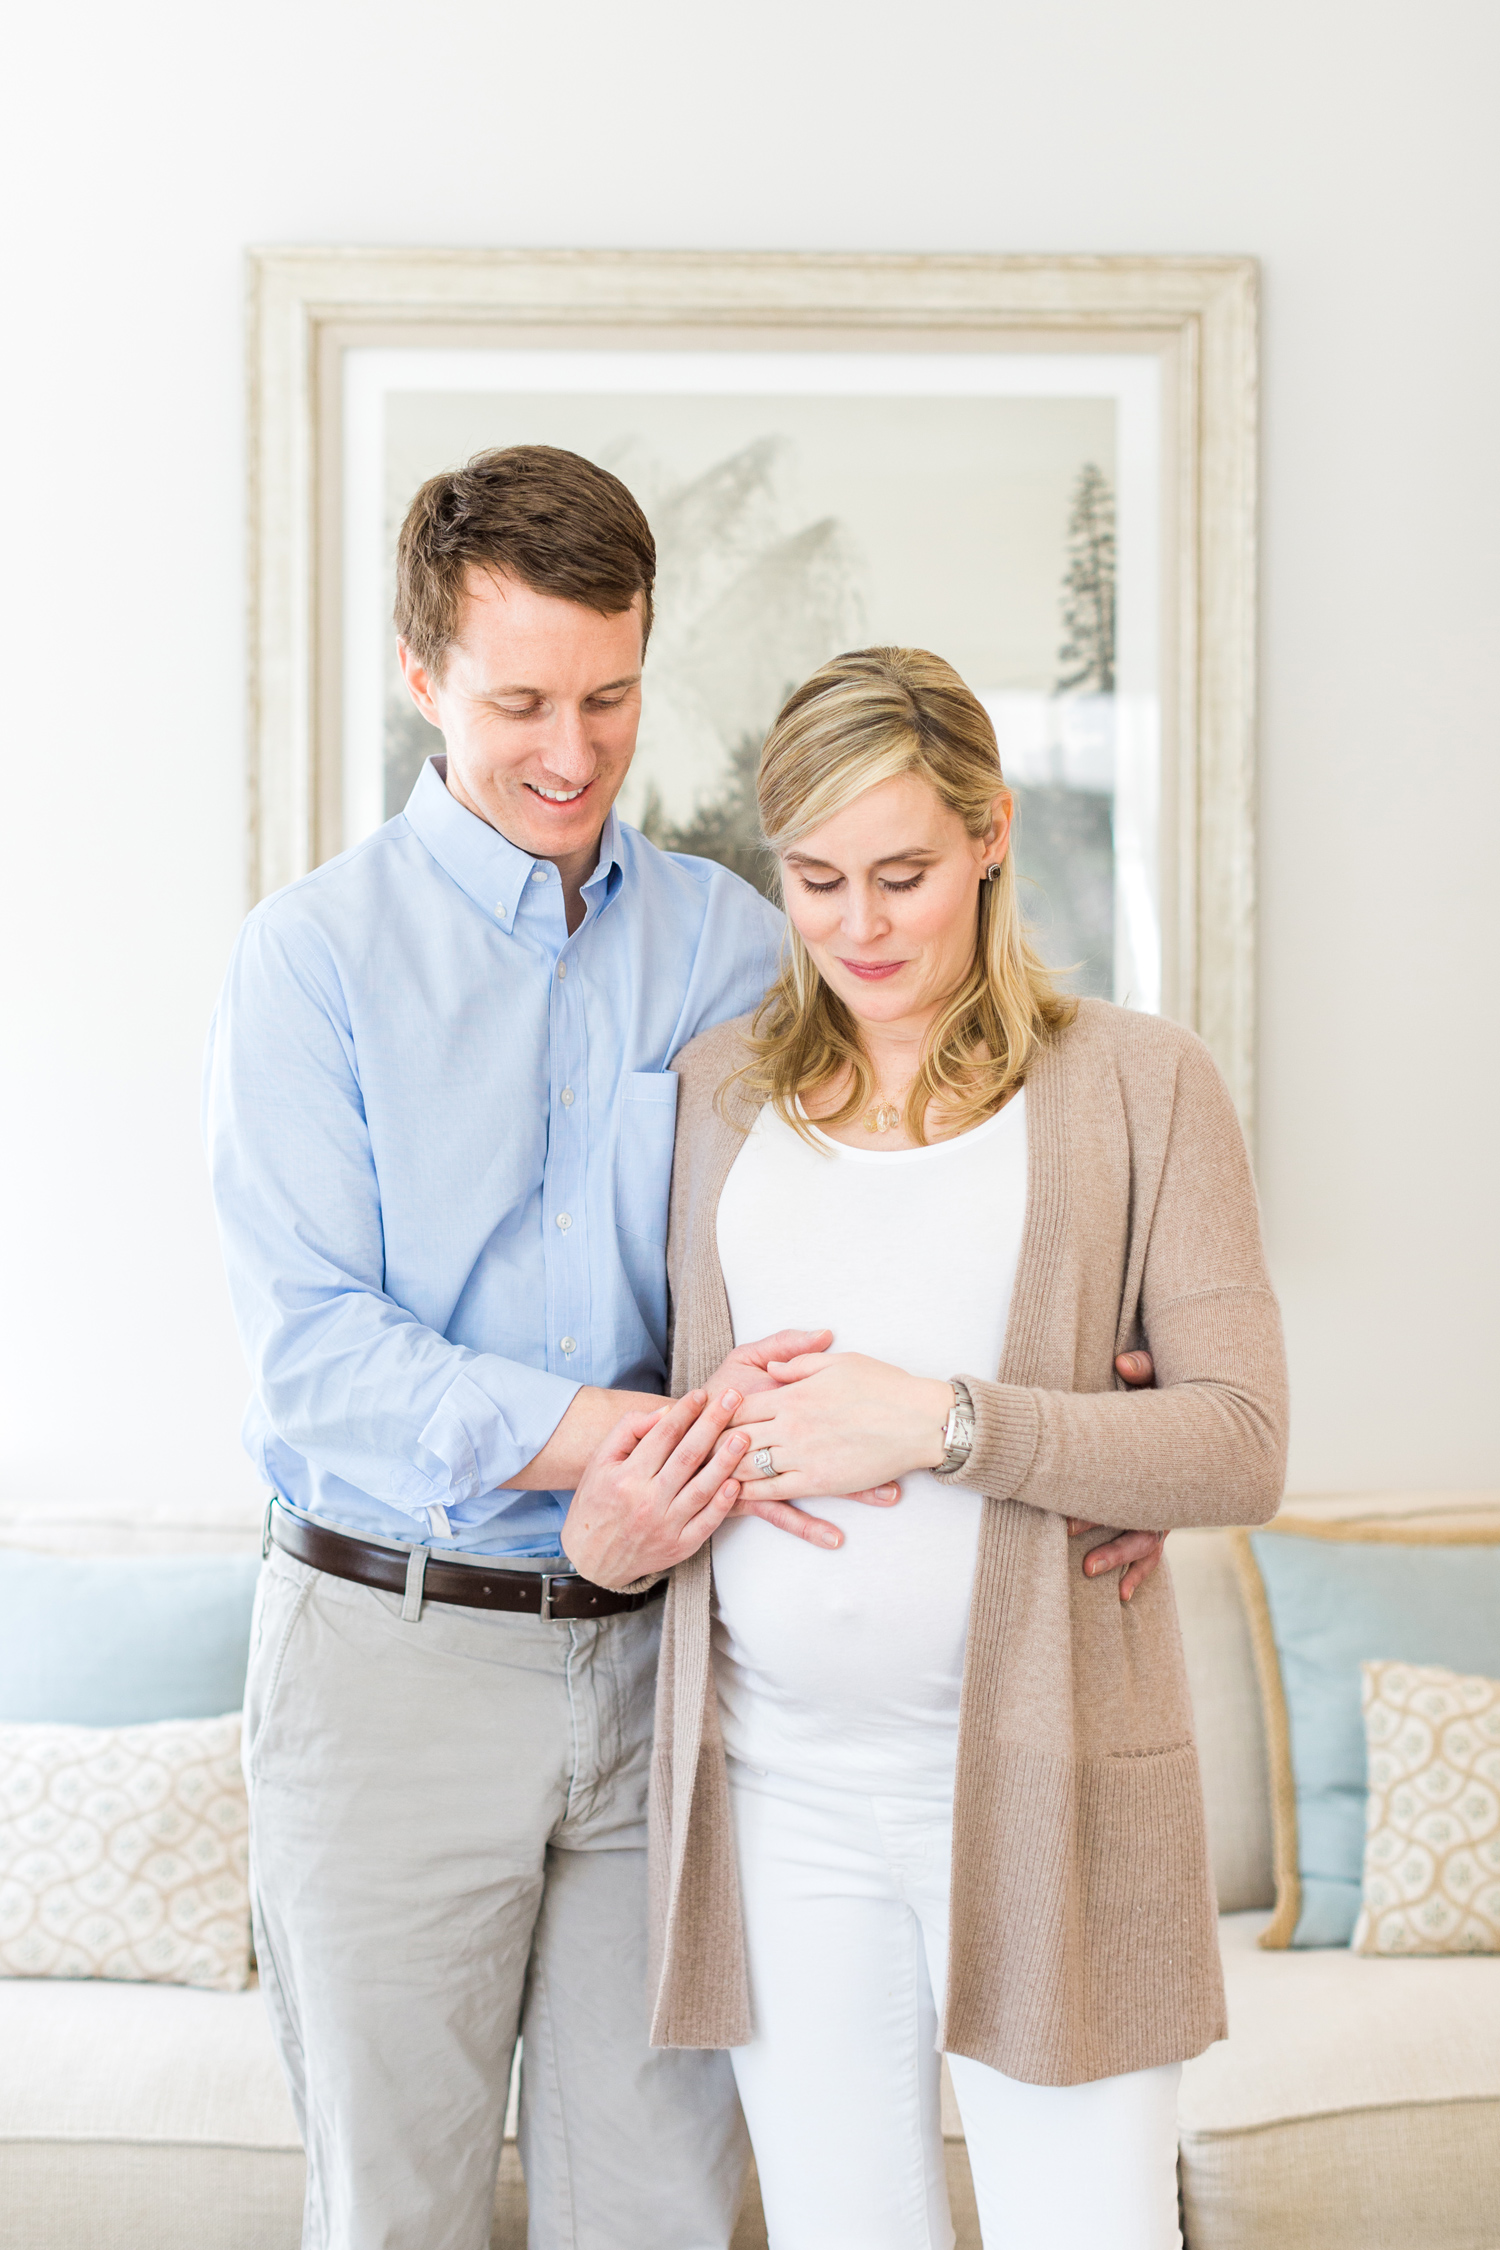 fairfield-county-maternity-at-home-greenwich-family-photography-mom-dad